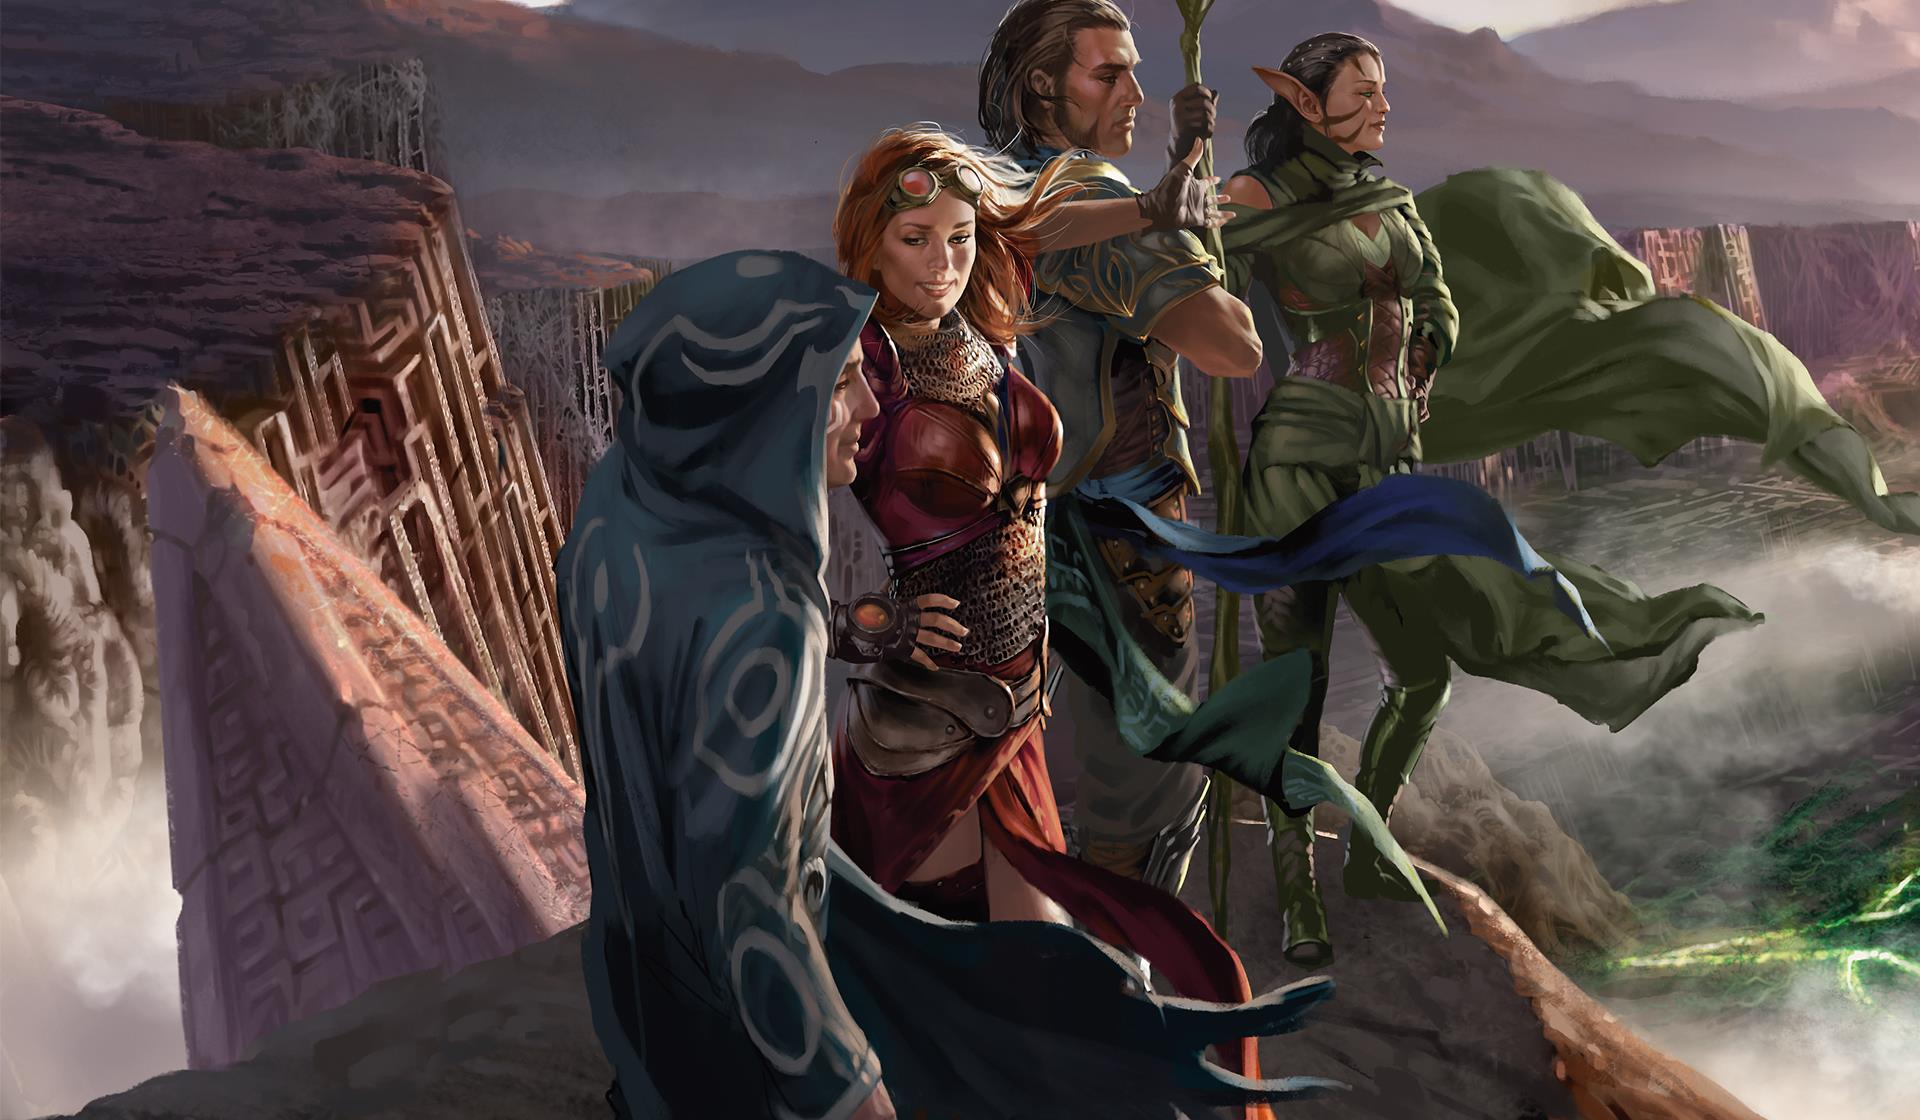 Art from MTG for Card MMORPG Games List